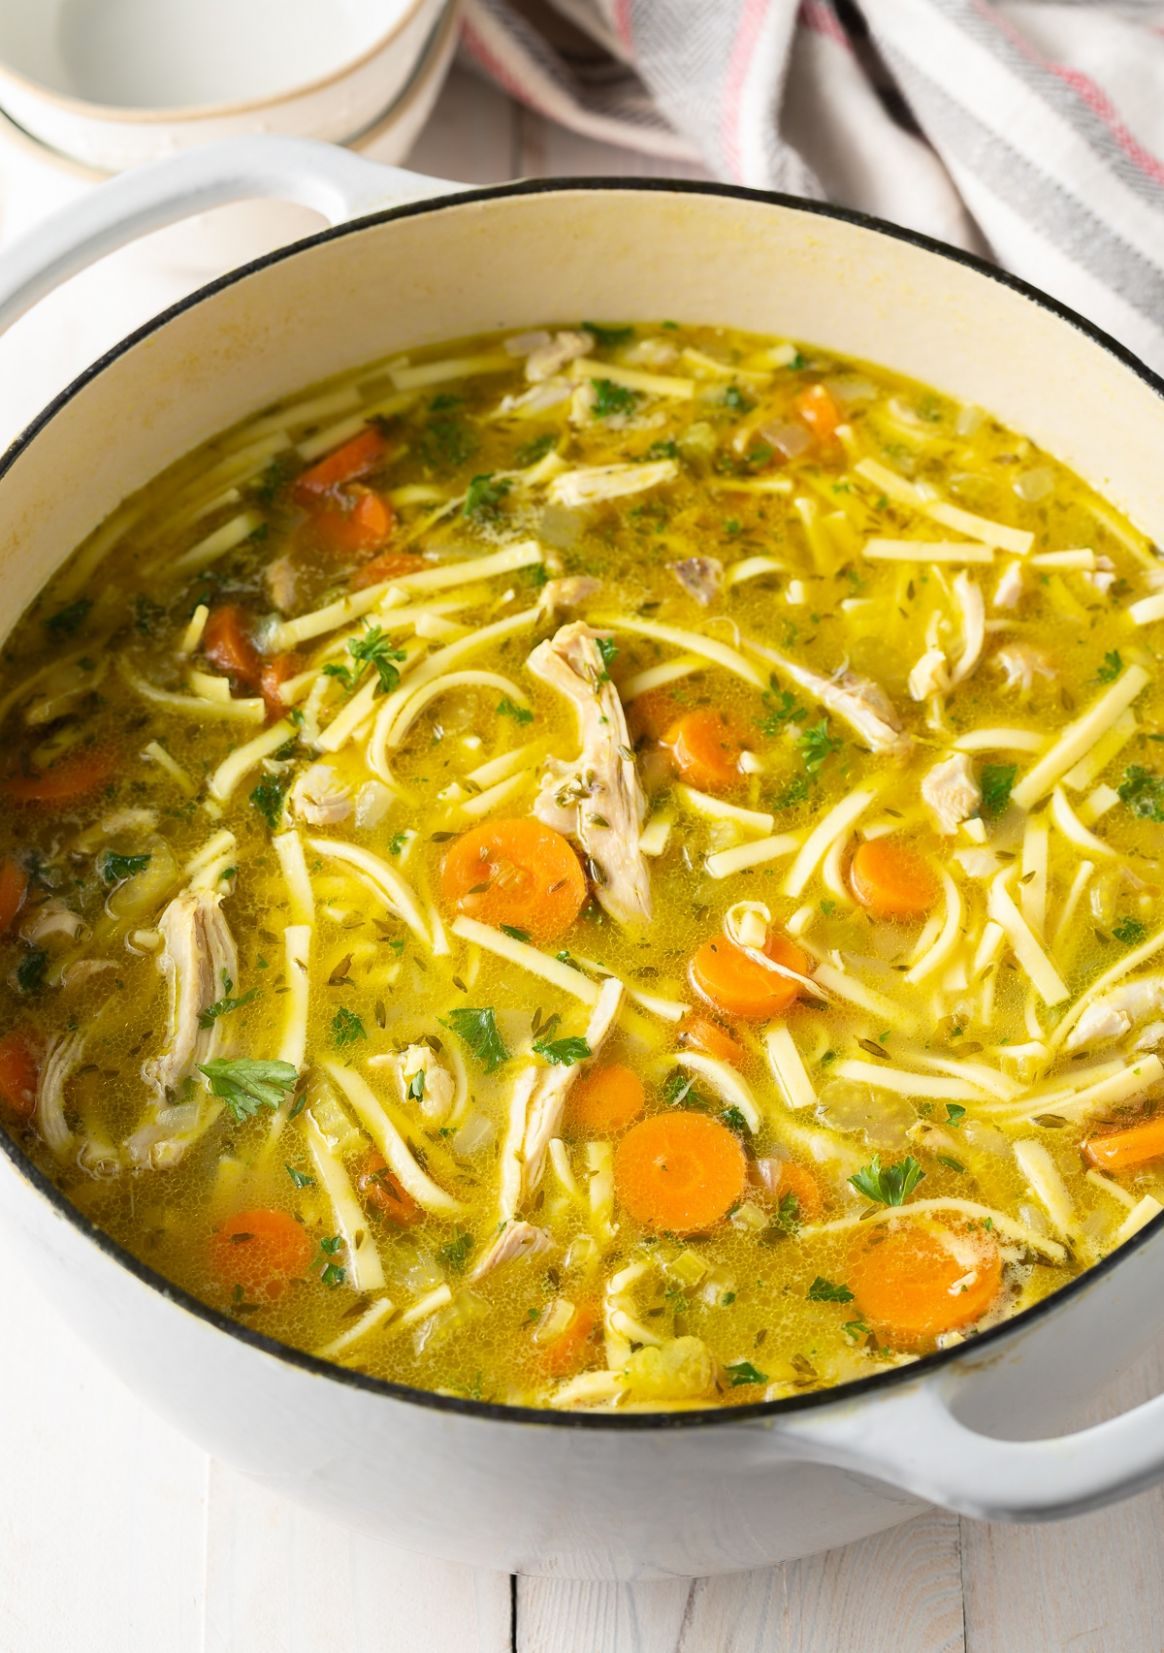 Homemade Chicken Noodle Soup Recipe - Recipes Chicken Noodle Soup